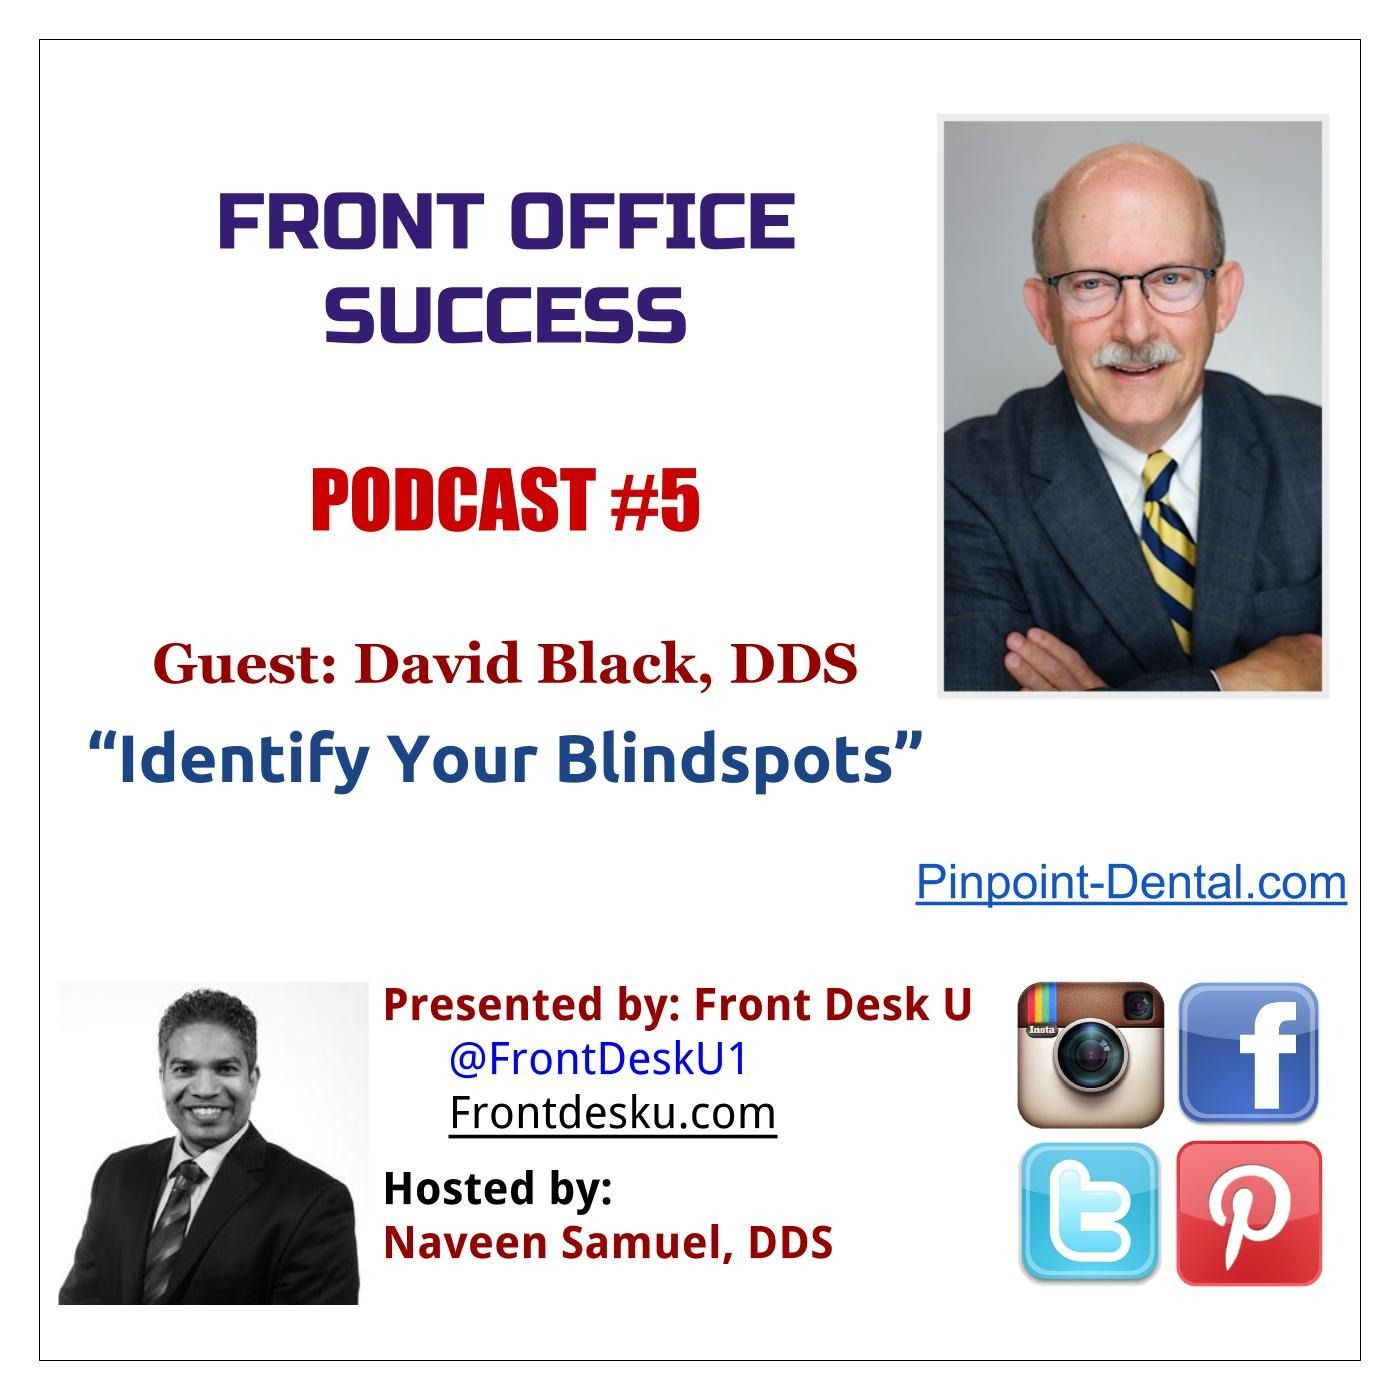 Front Office Success - Podcast #5 - David Black, DDS